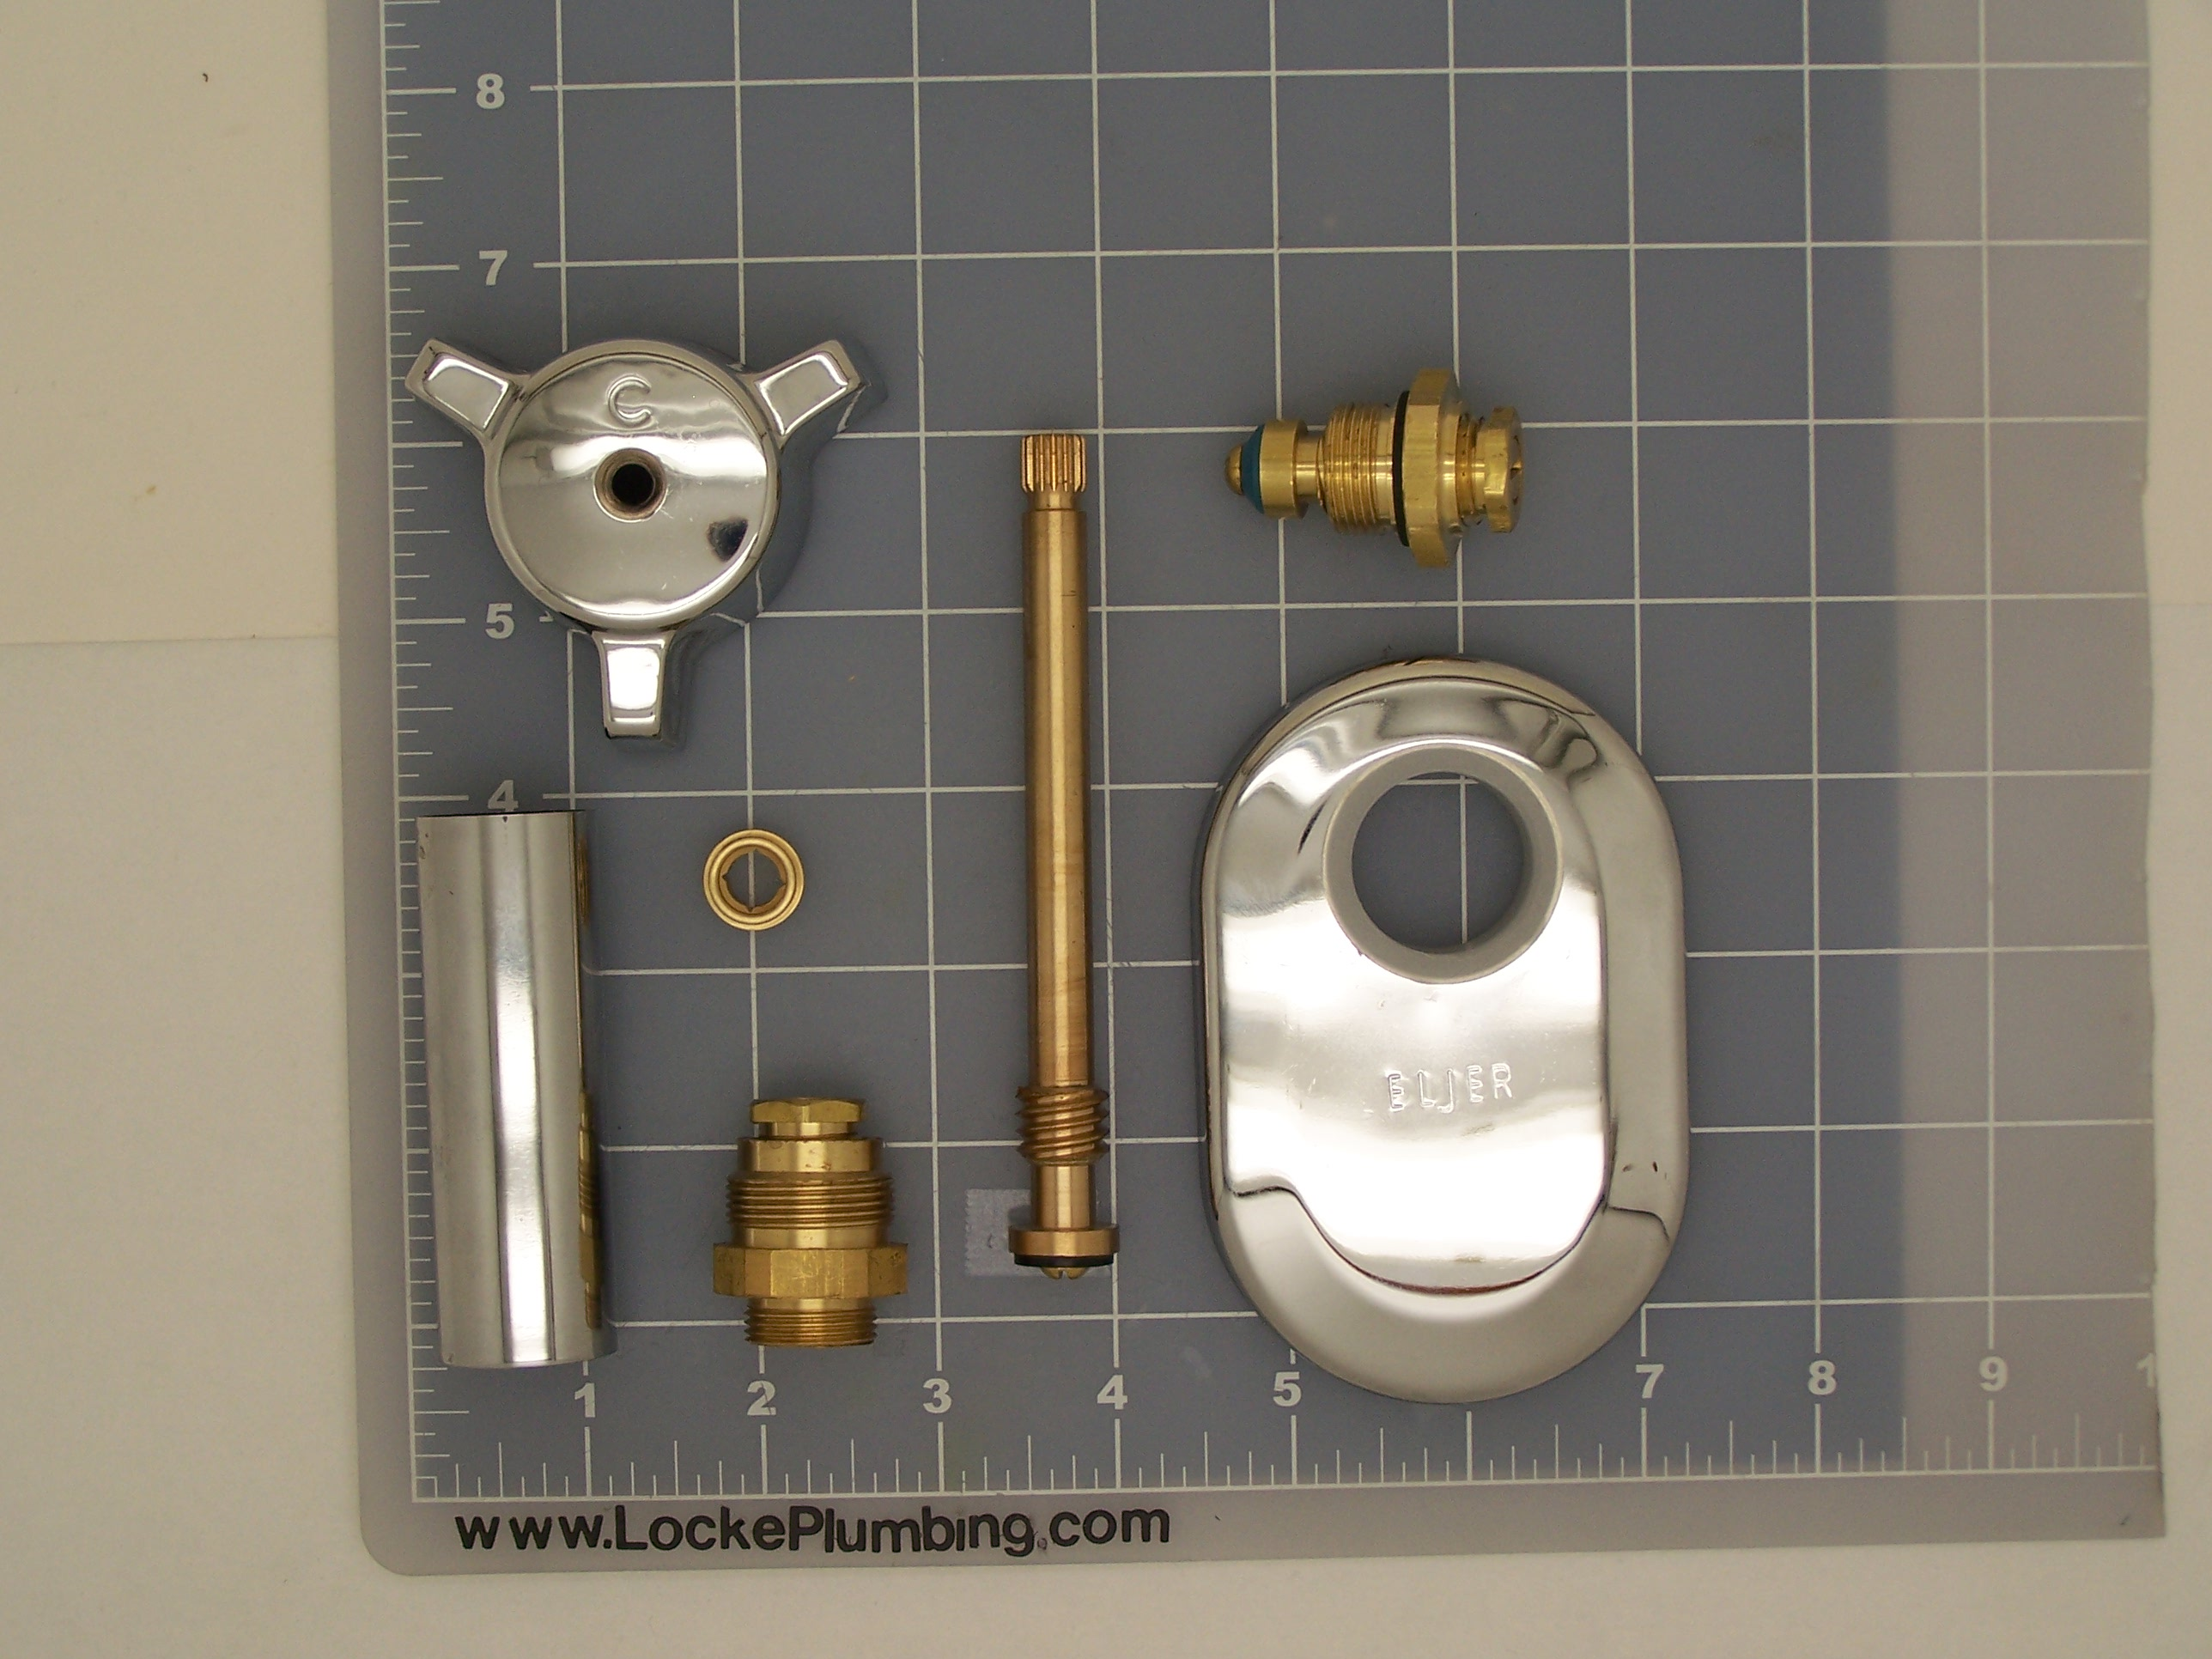 eljer elj kit repair kit for eljer tub faucet locke plumbing - Eljer Kitchen Sinks